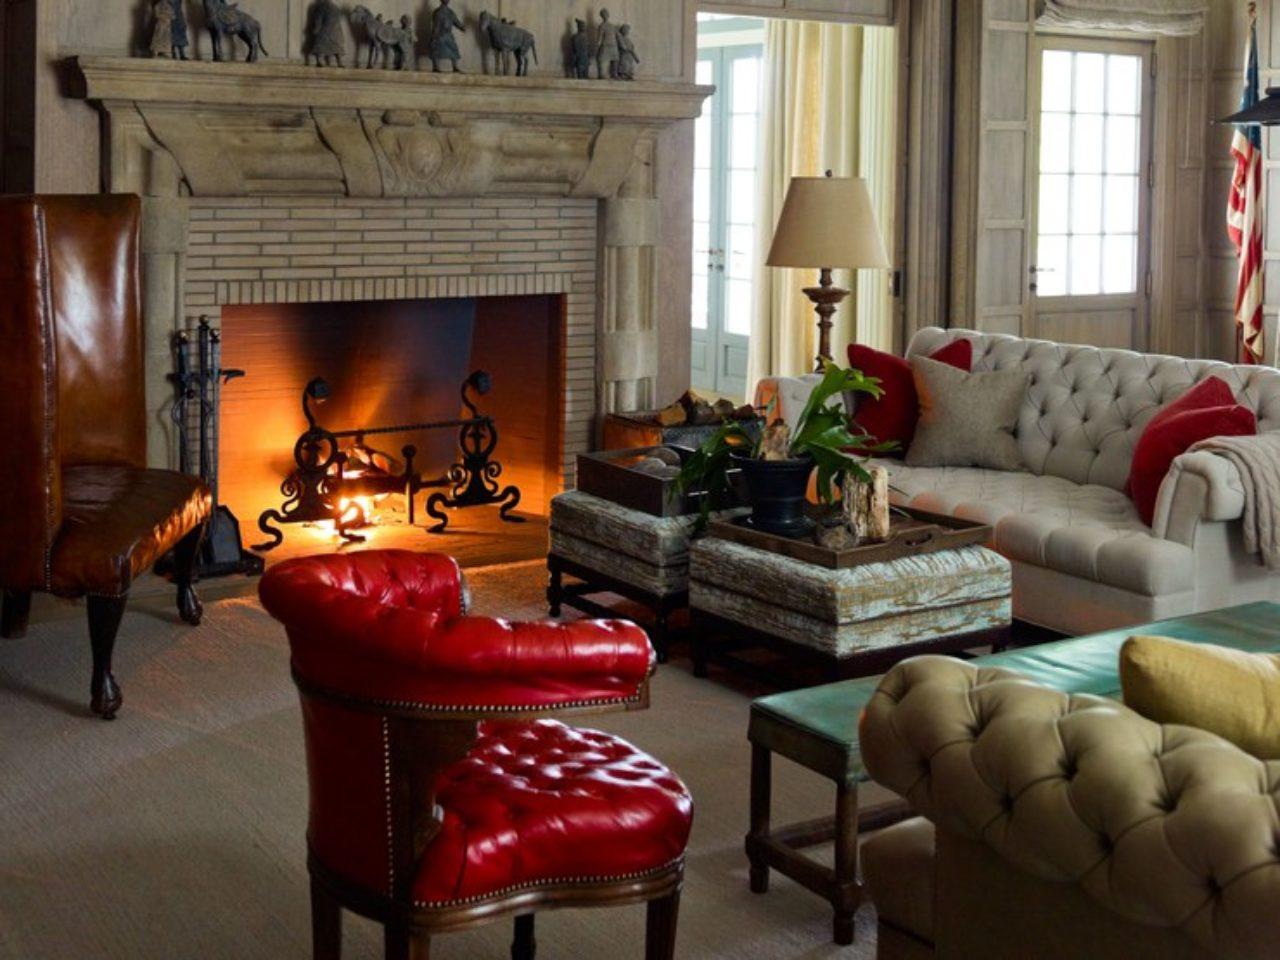 Interior by S.R. Gambrel Inc. (Image Source: Architectural Digest / Eric Piasecki)